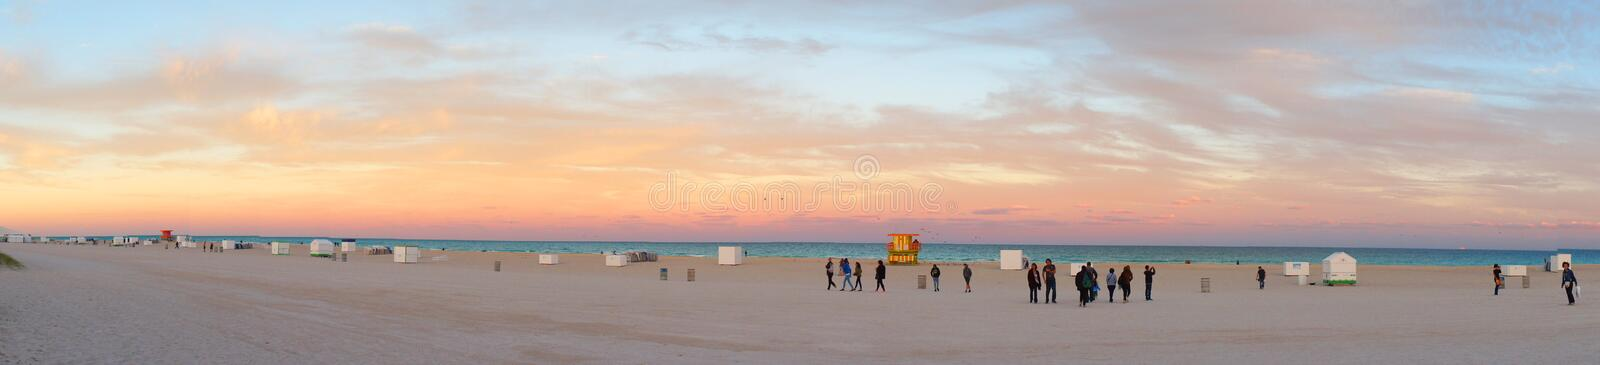 Evening South Beach of Miami near Atlantic Ocean. Miami Beach, United States - February 12, 2016: People walk and relax at the evening South Beach of Miami near stock images